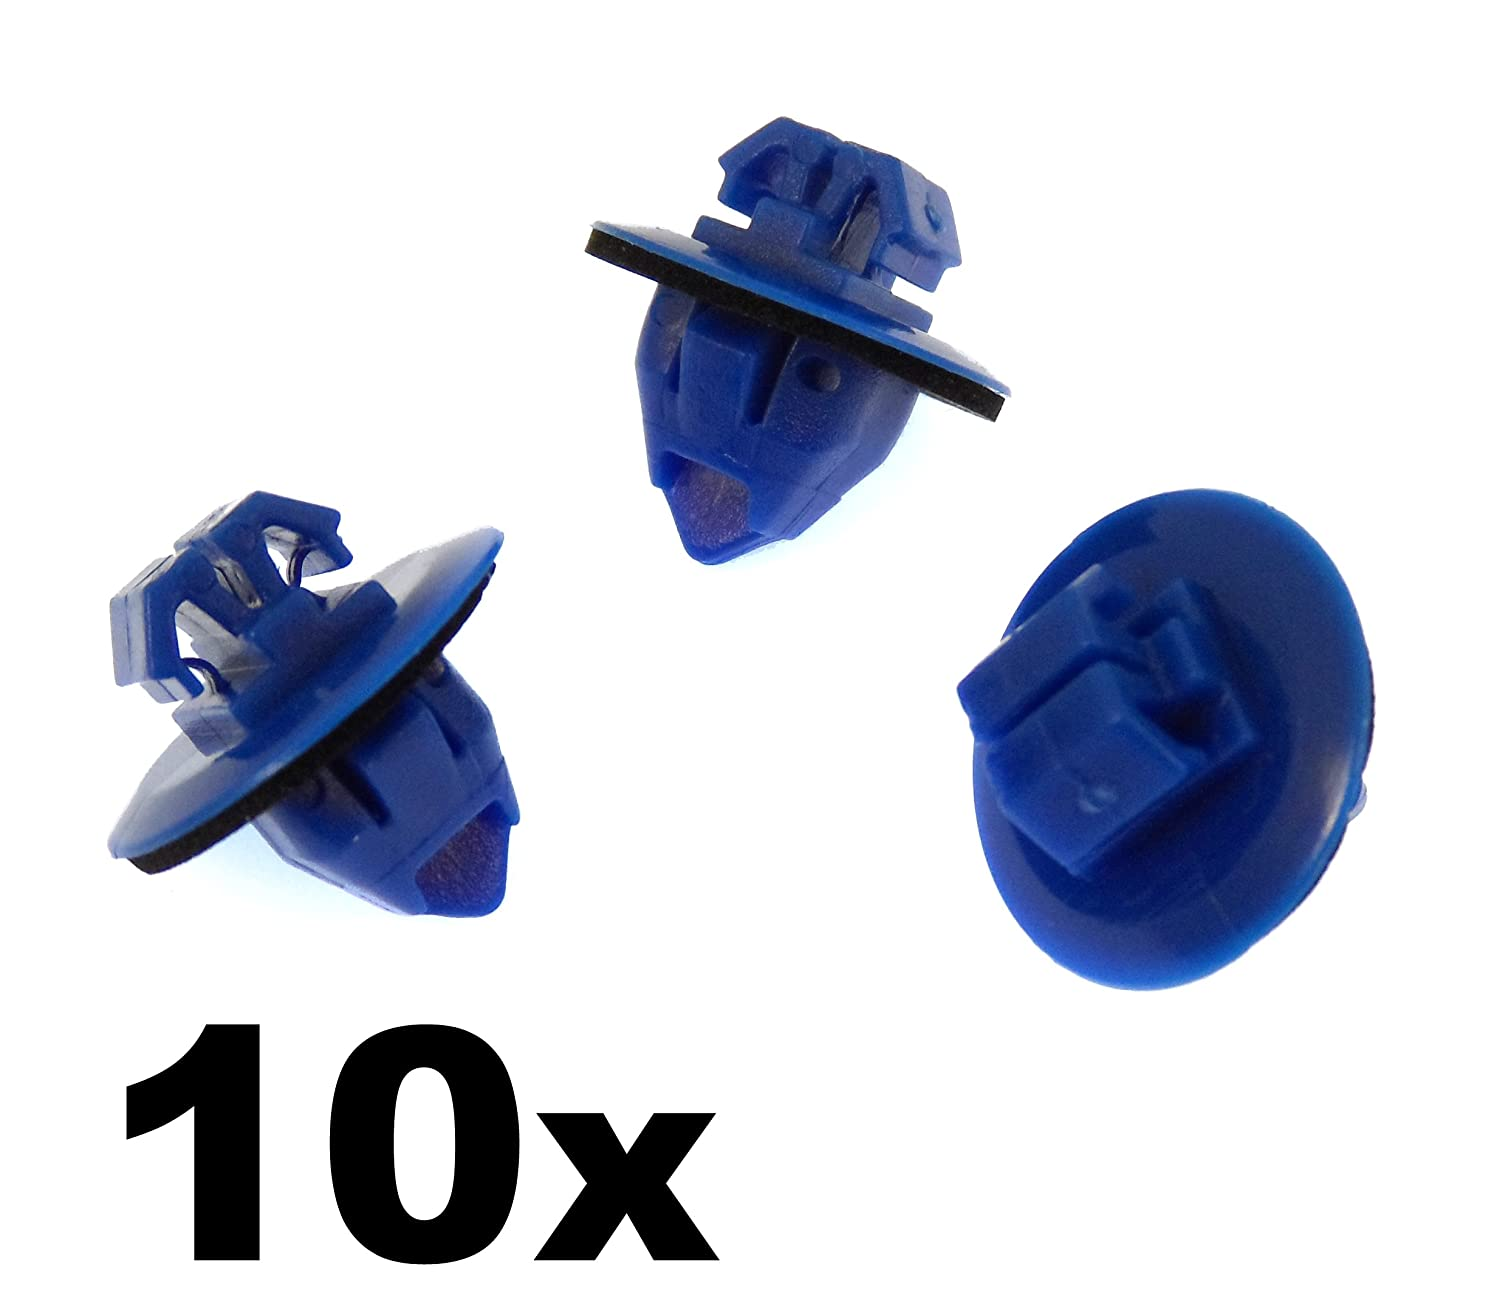 10x Land Cruiser Side Moulding /& Wheel Arch Flare Plastic Trim Clips 75495-35010, 7549535010